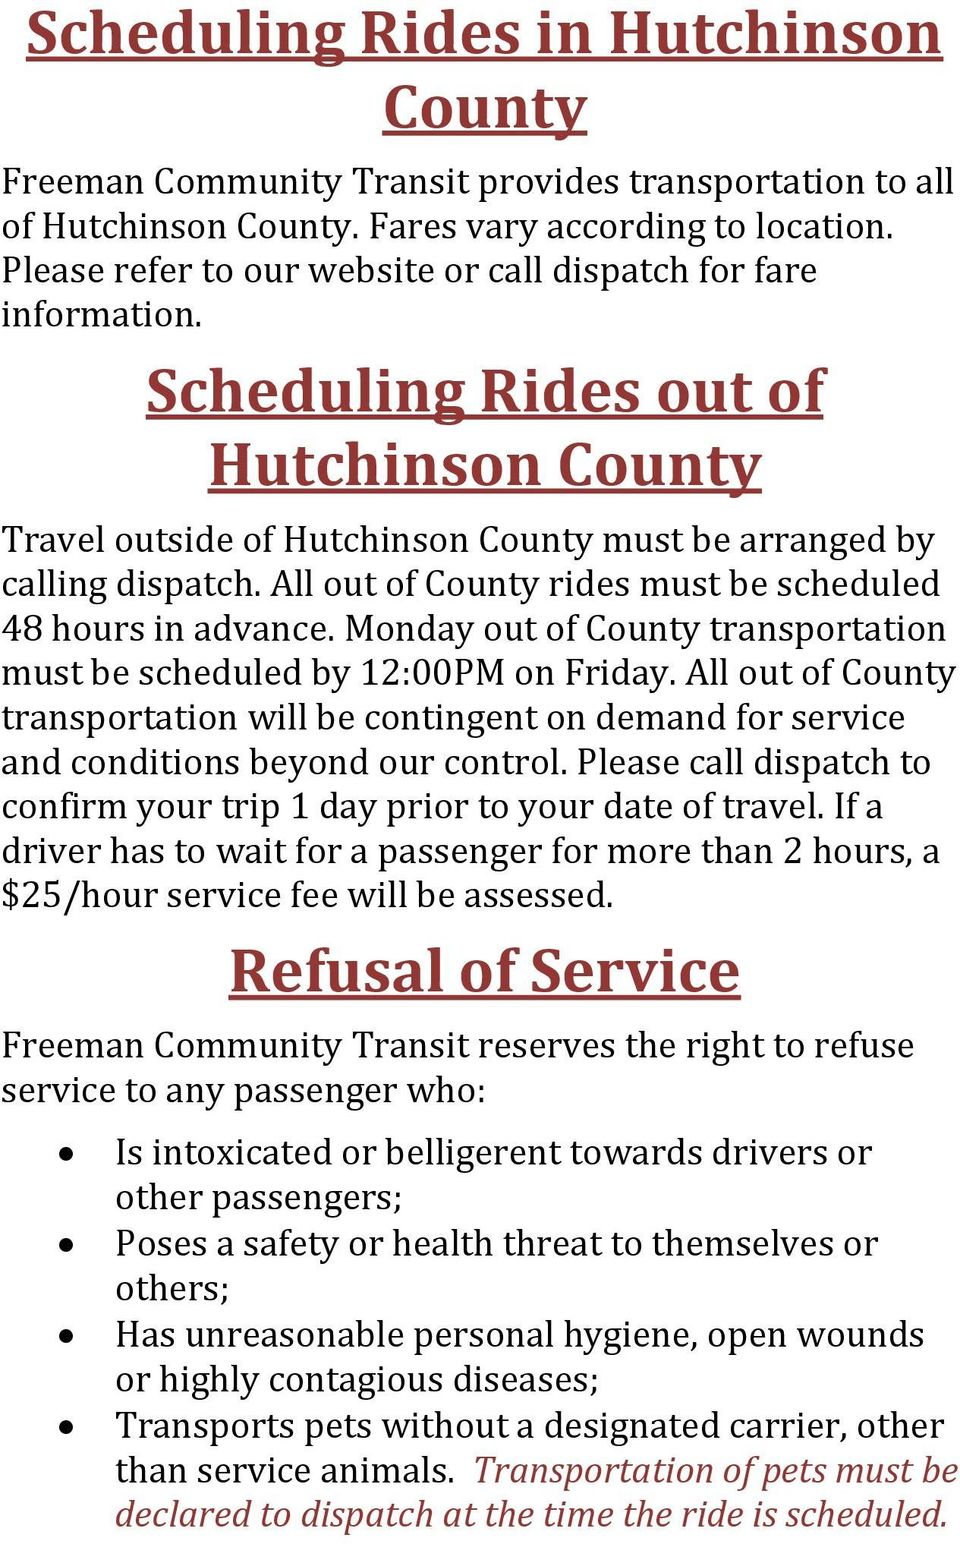 All out of County rides must be scheduled 48 hours in advance. Monday out of County transportation must be scheduled by 12:00PM on Friday.